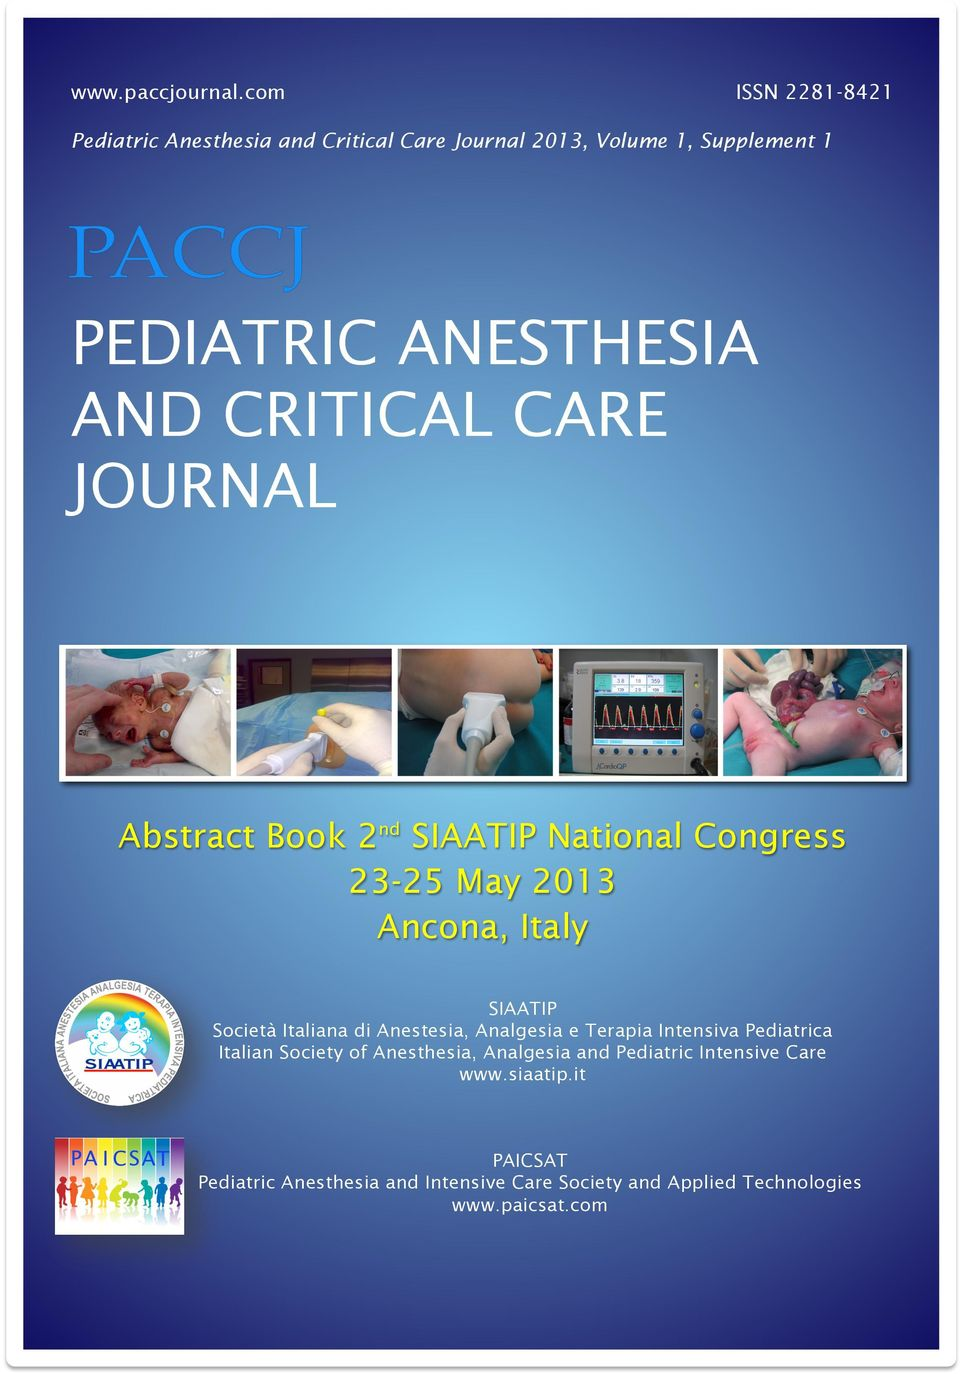 CRITICAL CARE JOURNAL Abstract Book 2nd SIAATIP National Congress 23-25 May 2013 Ancona, Italy SIAATIP Società Italiana di